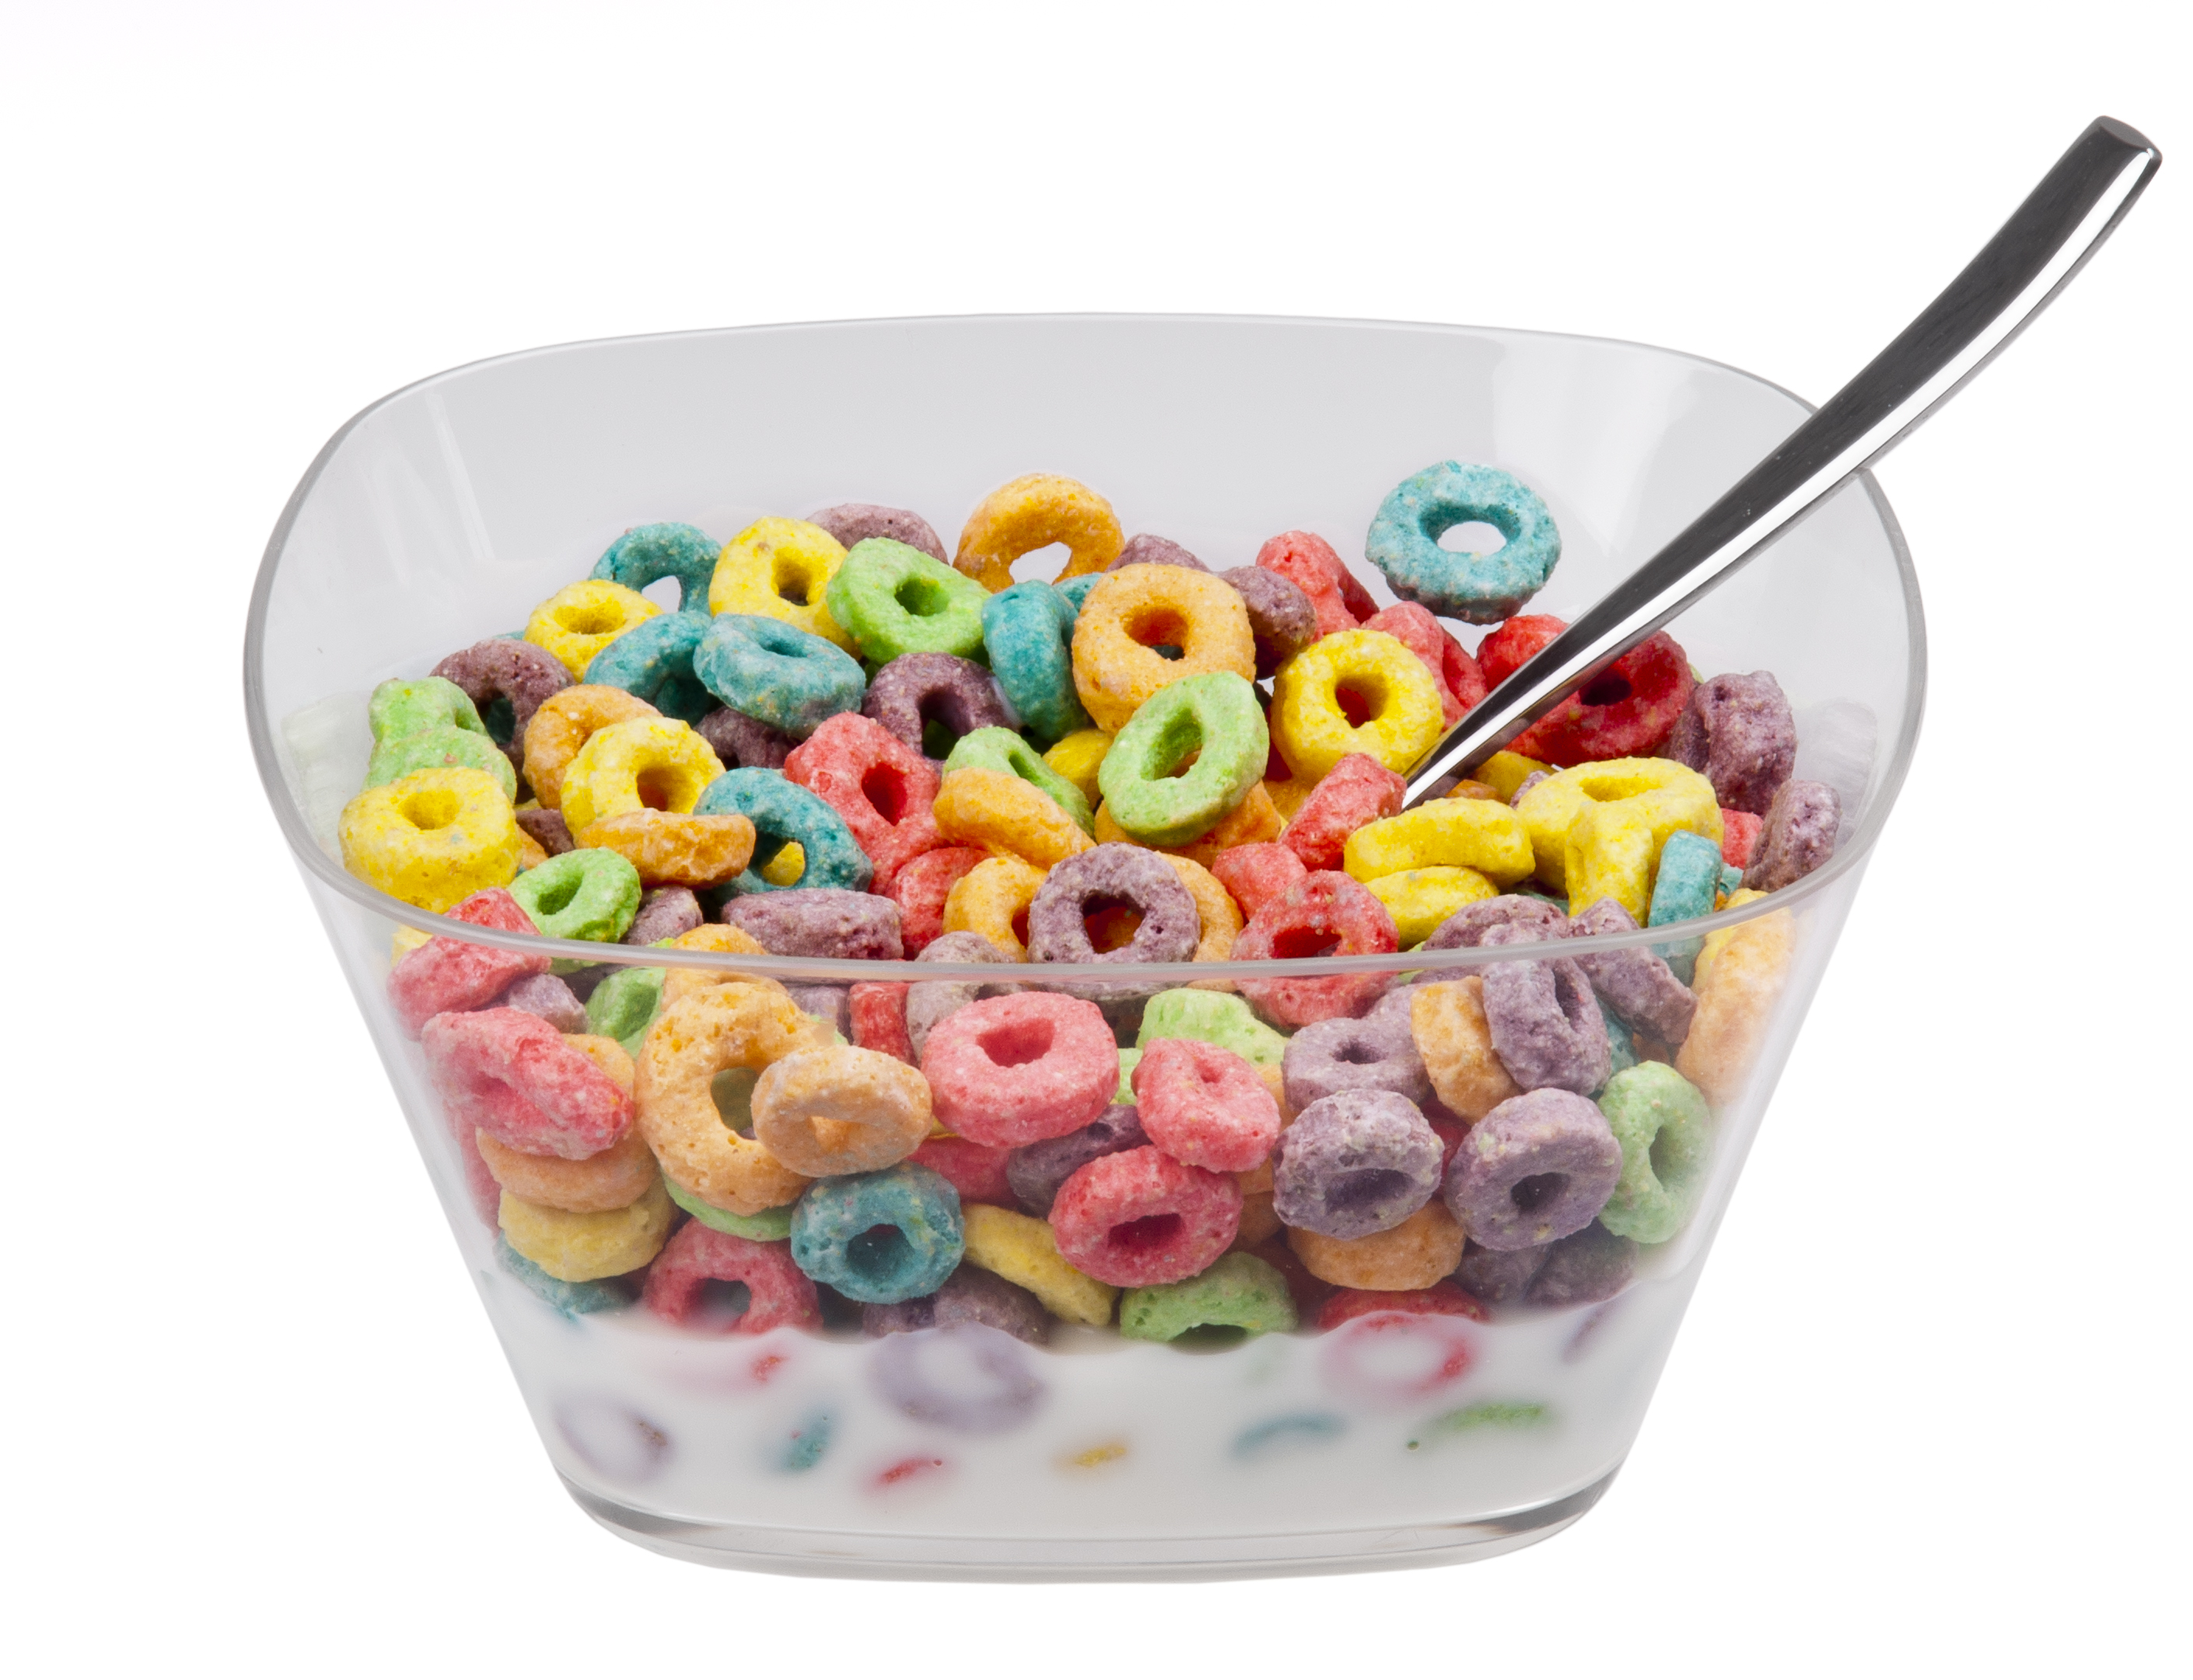 Description Froot Loops Cereal Bowl Jpg